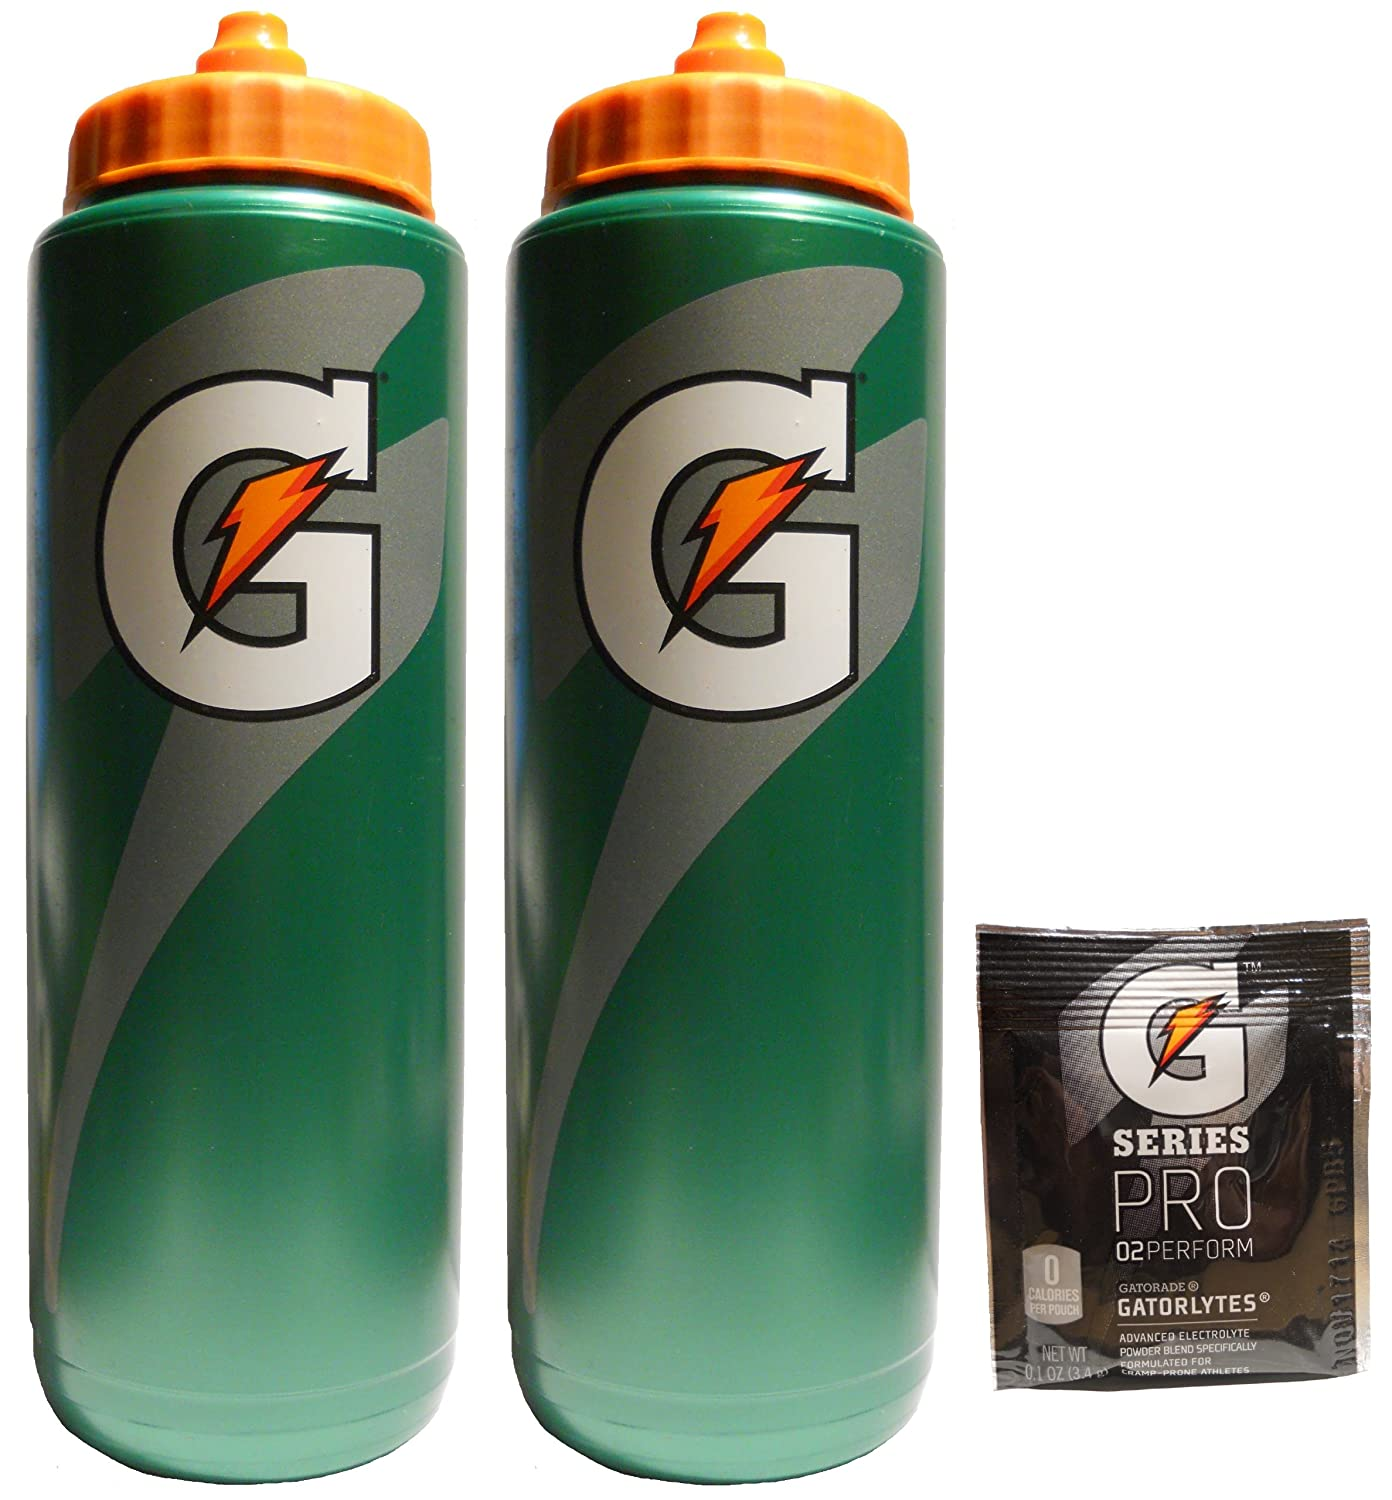 an overview of gatorade and how it works Find company research, competitor information, contact details & financial data for the gatorade company get the latest business insights from d&b hoovers.